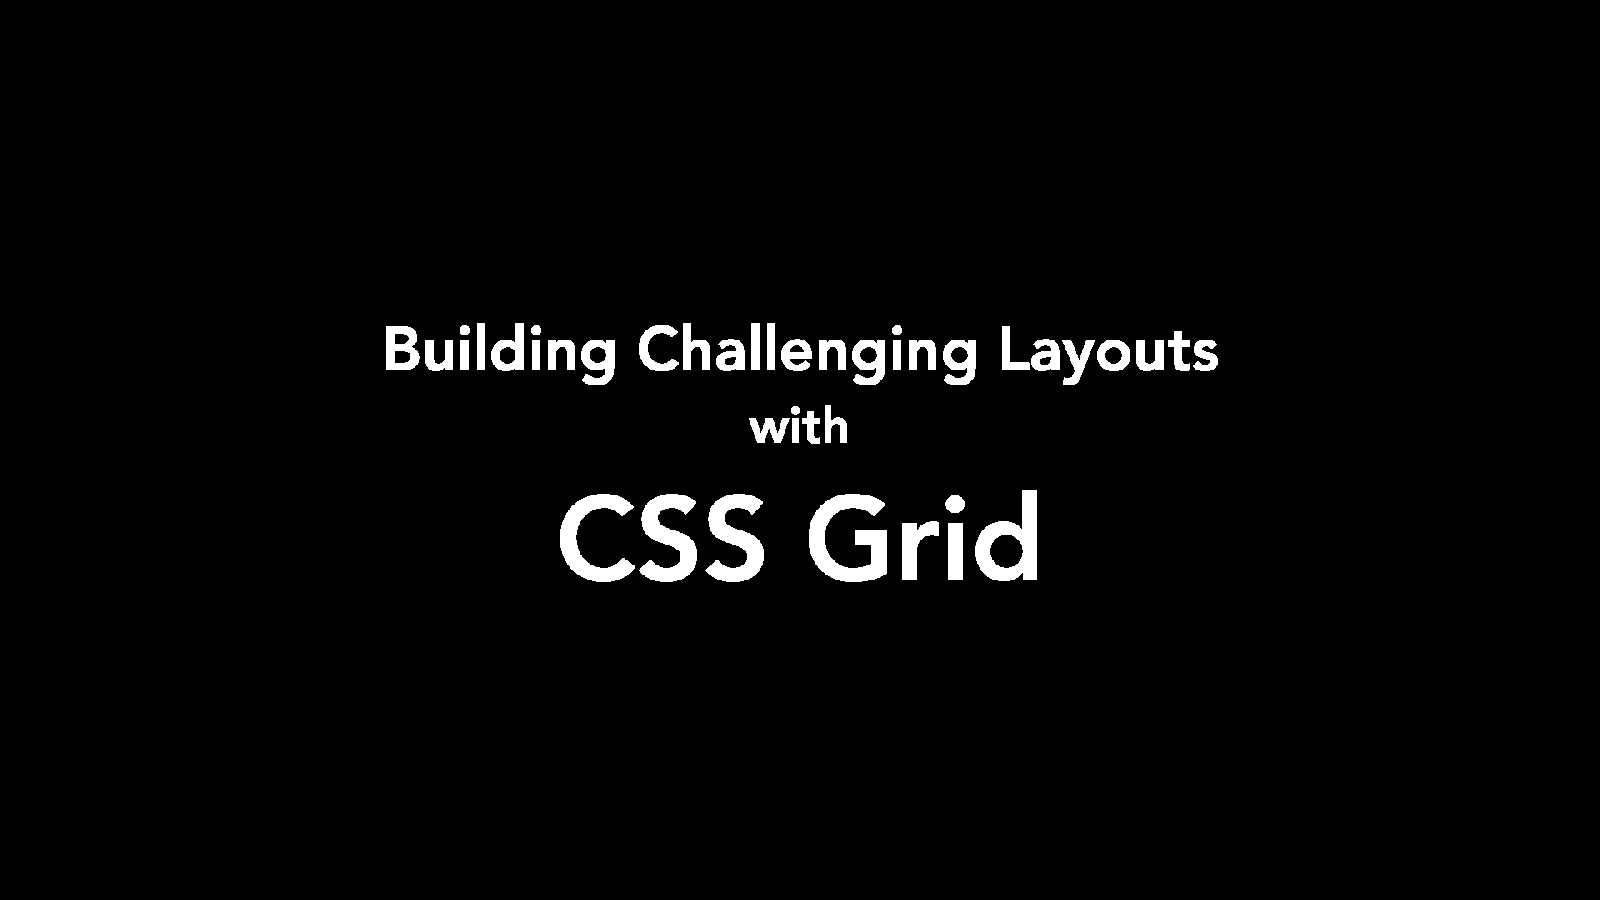 Building Challenging Layouts with CSS Grid